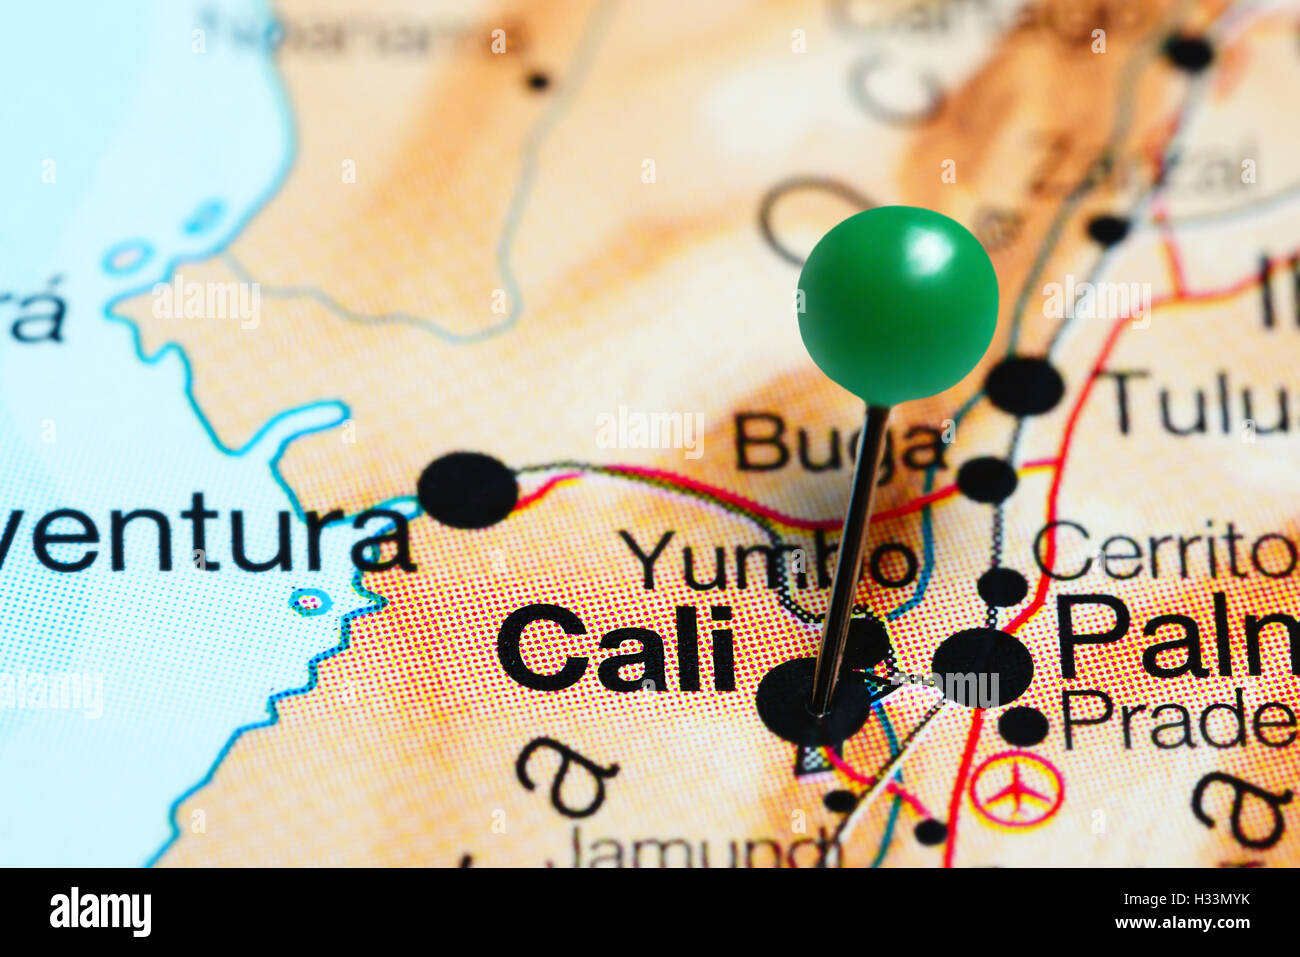 Cali pinned on a map of Colombia Stock Photo: 122398855 - Alamy on